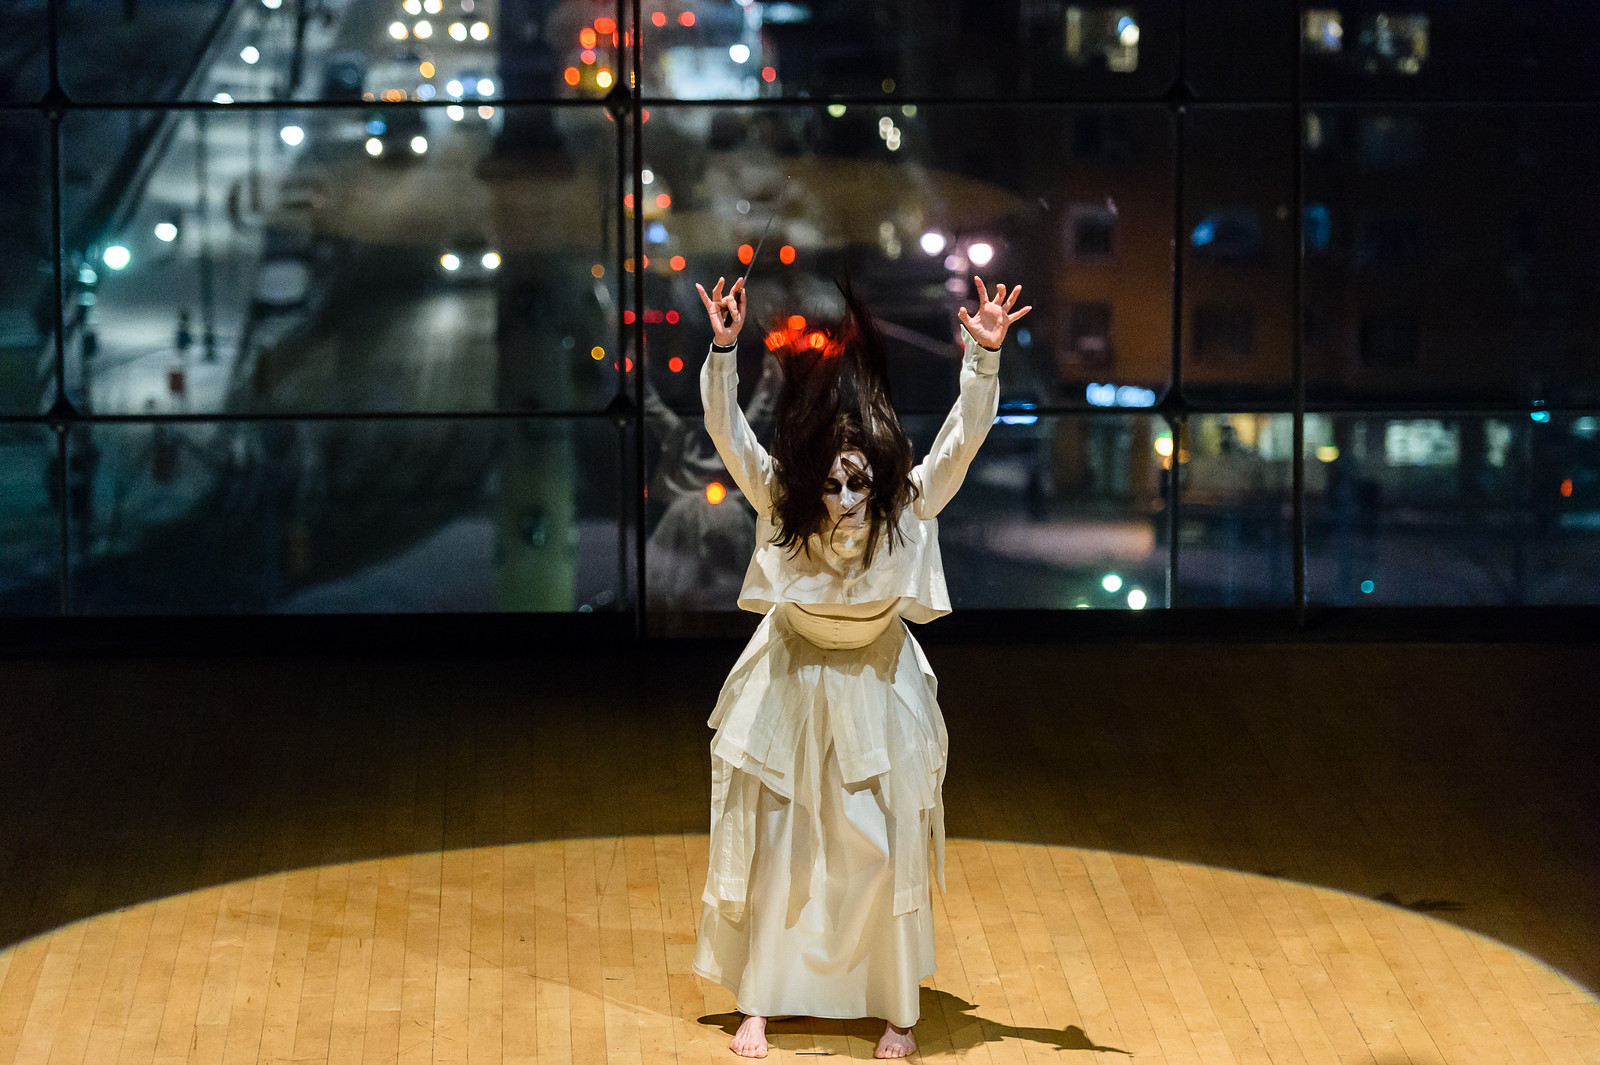 Photo by Darial Sneed- Vangeline at Lincoln Center